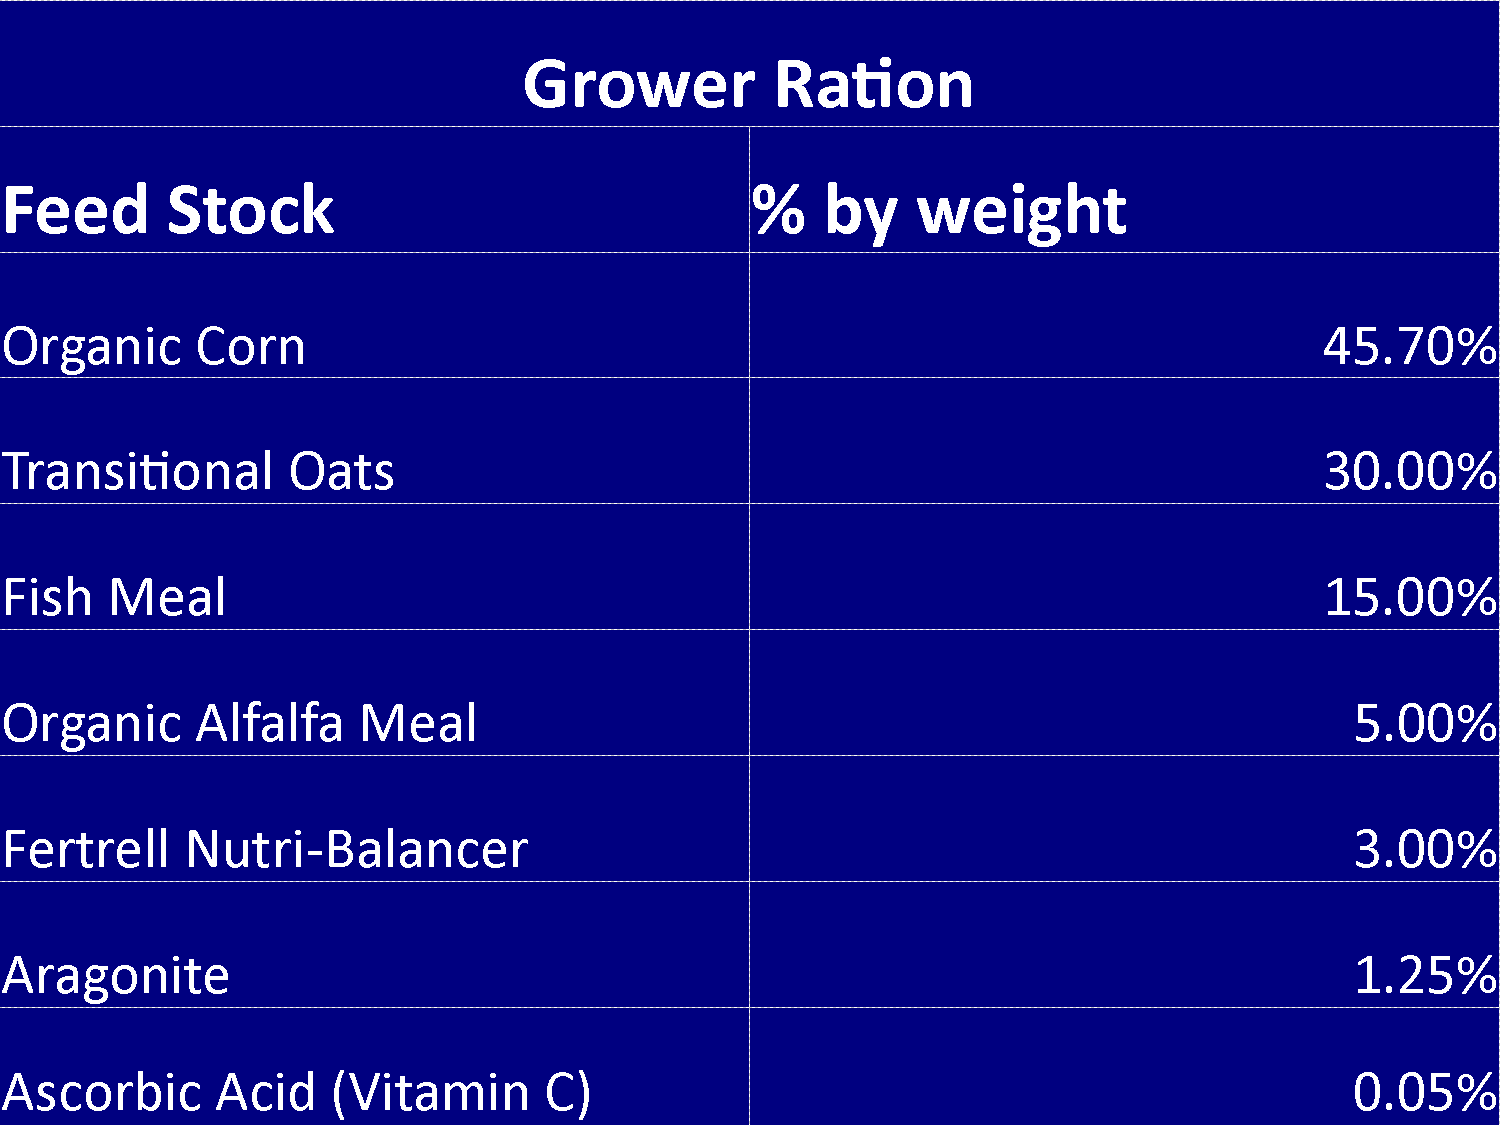 grower-ration.png